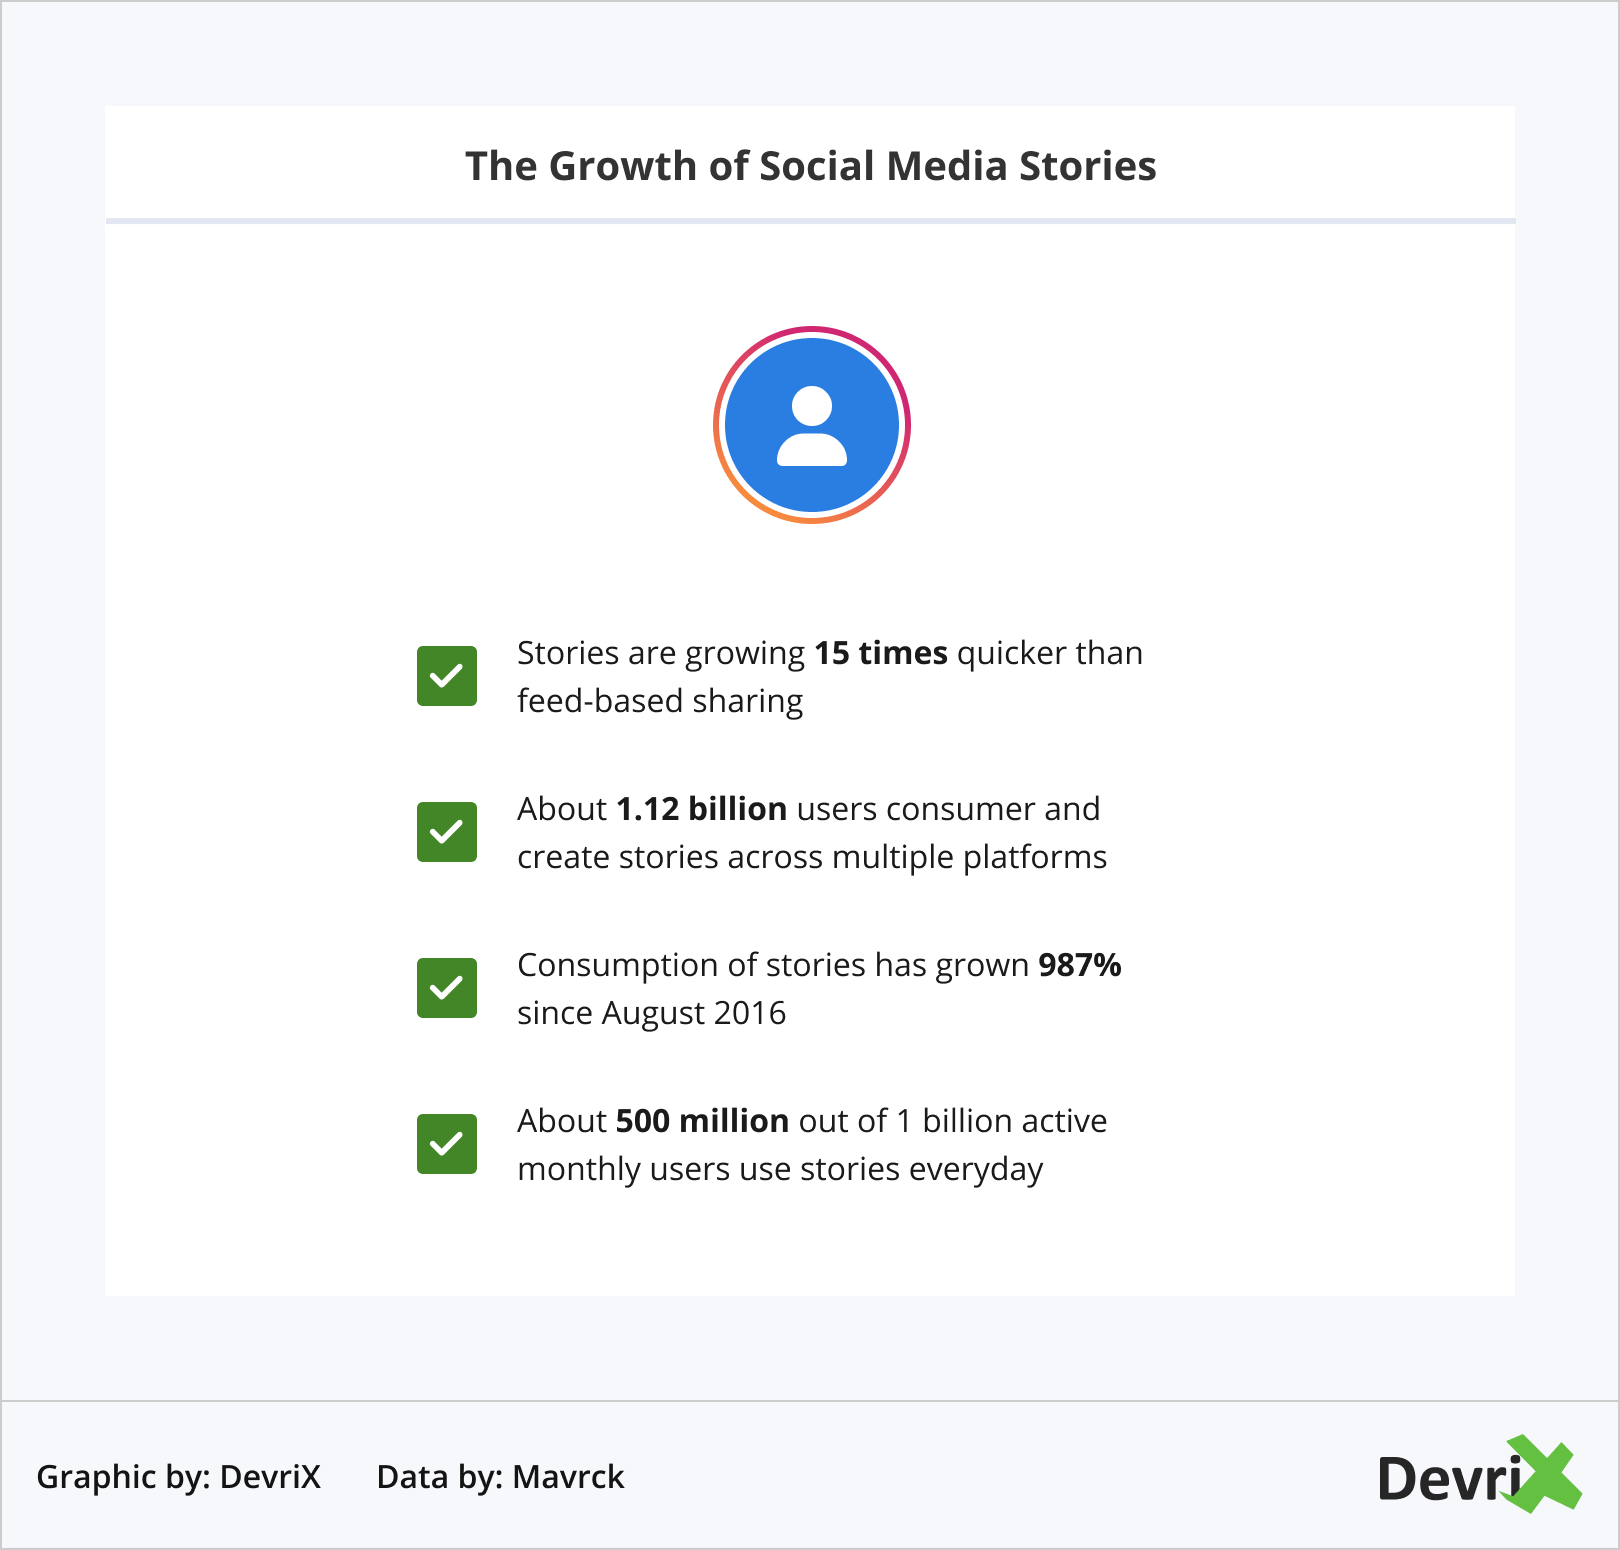 The Growth of Social Media Stories